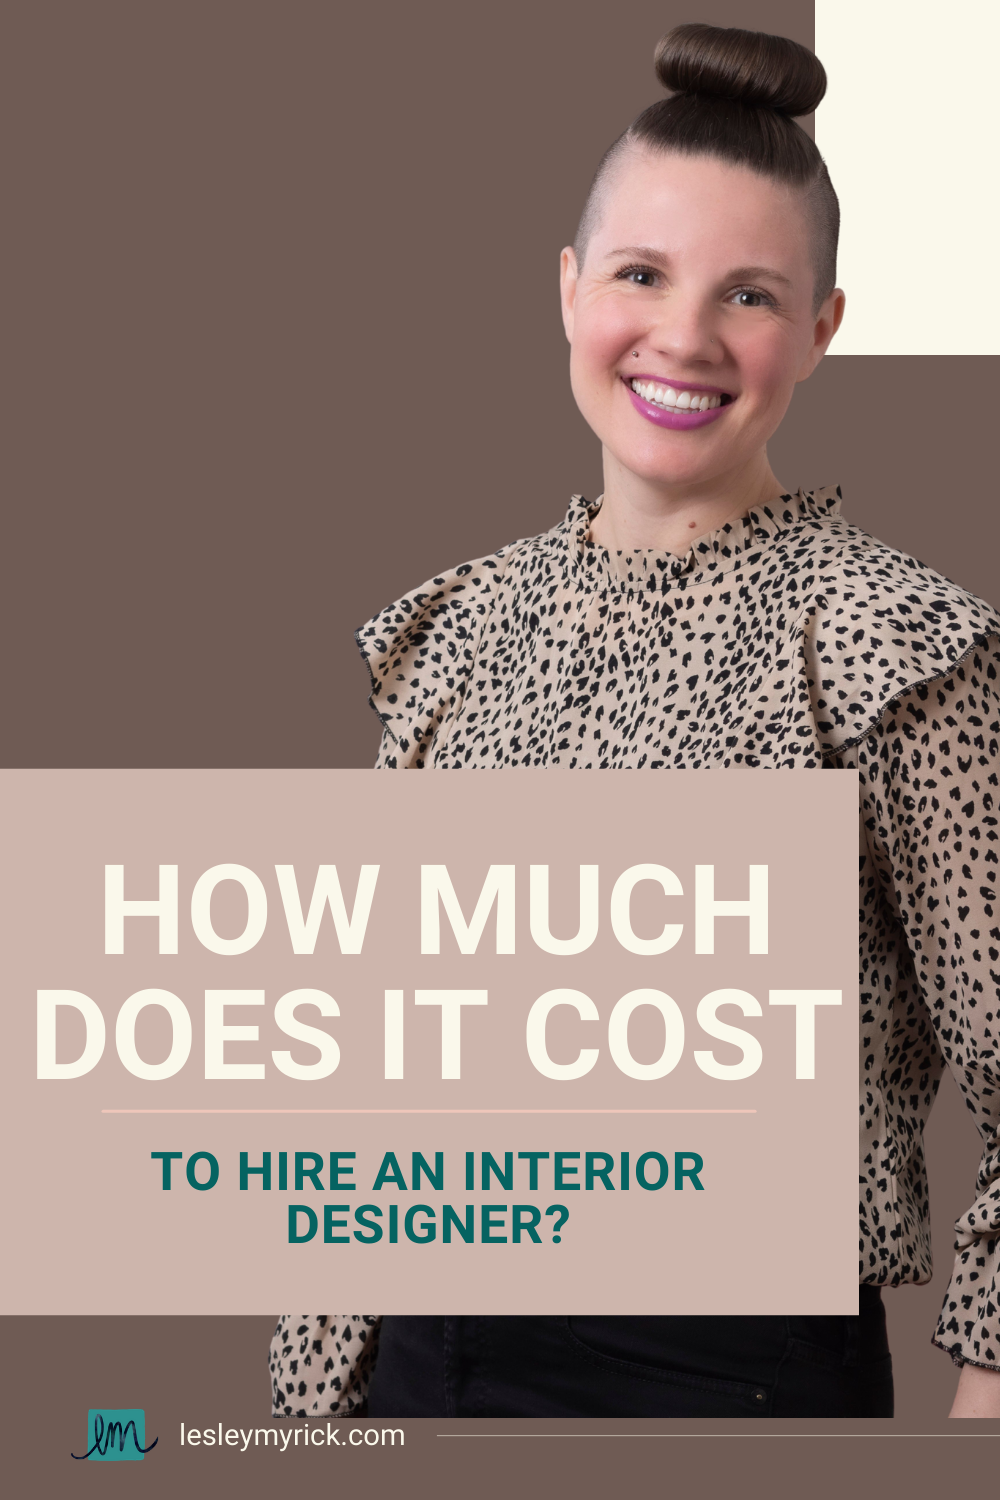 How much does it cost to hire an interior designer? Here's what the investment is and how hiring a designer can save you money.